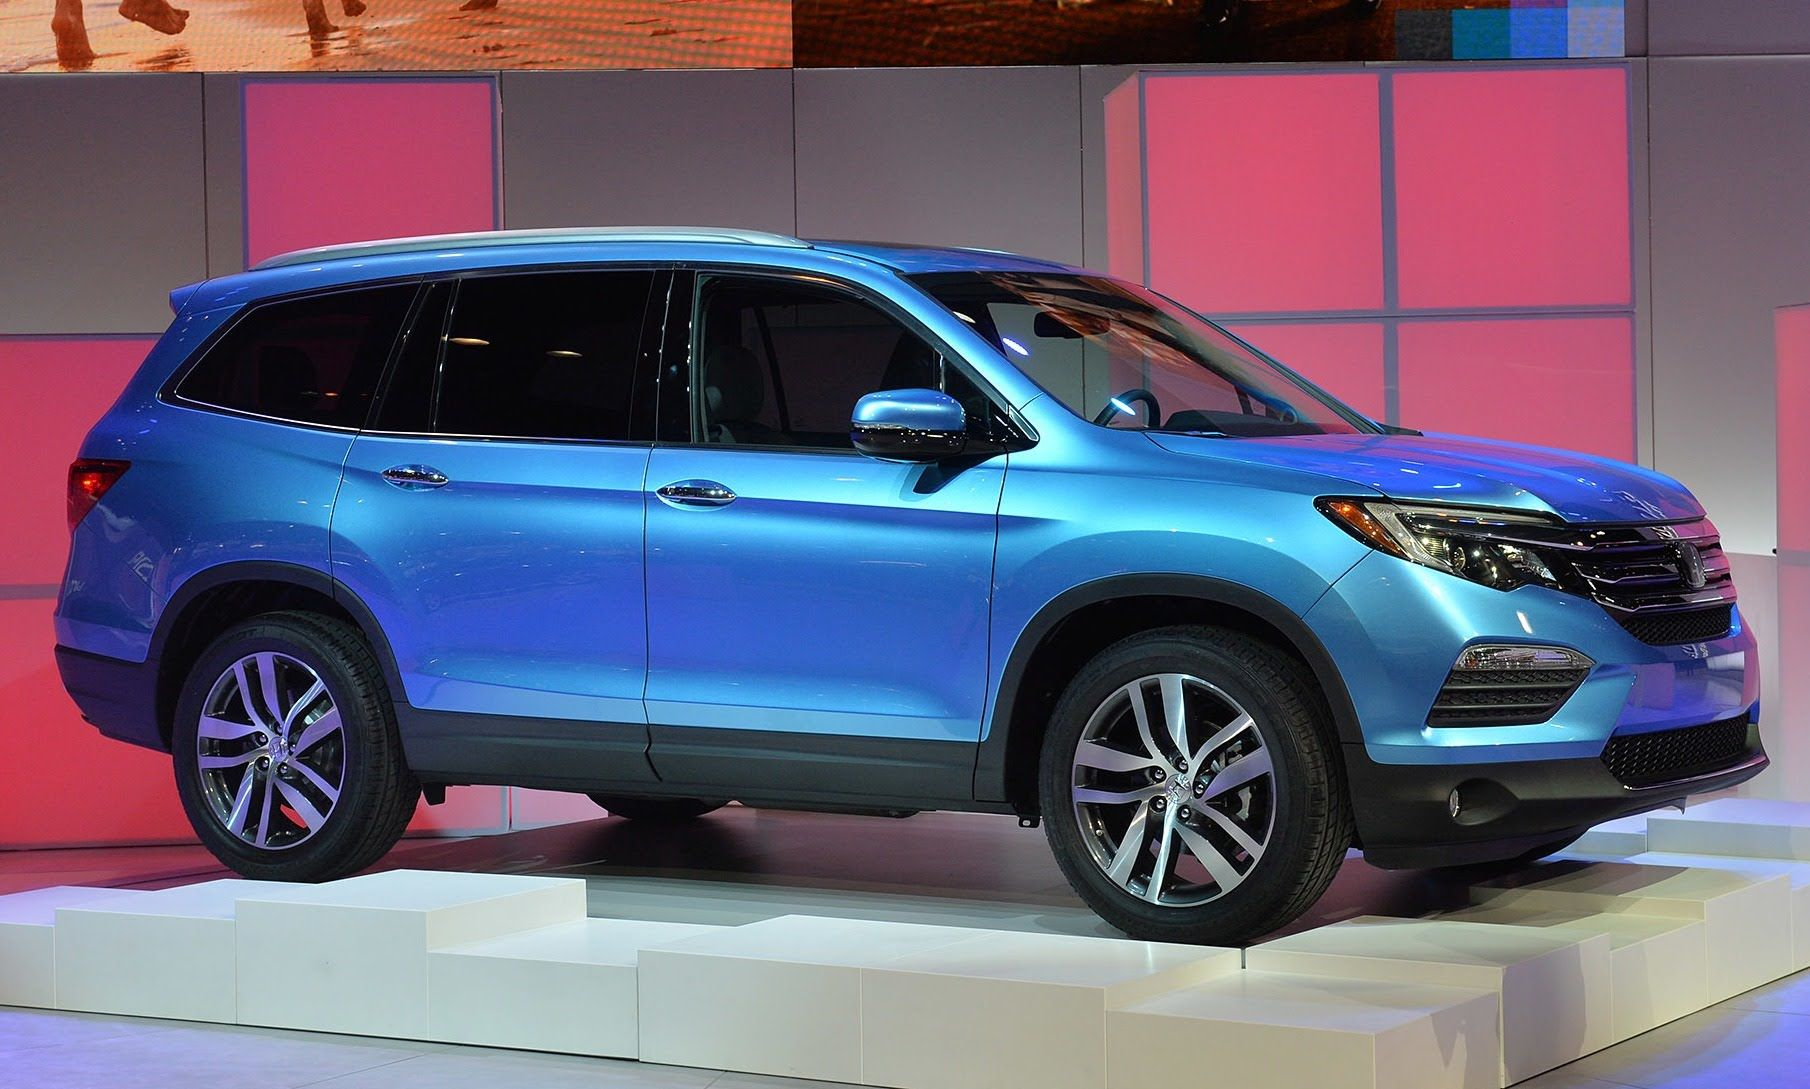 2016 honda pilot 2015 chicago auto show we are so excited to get these in